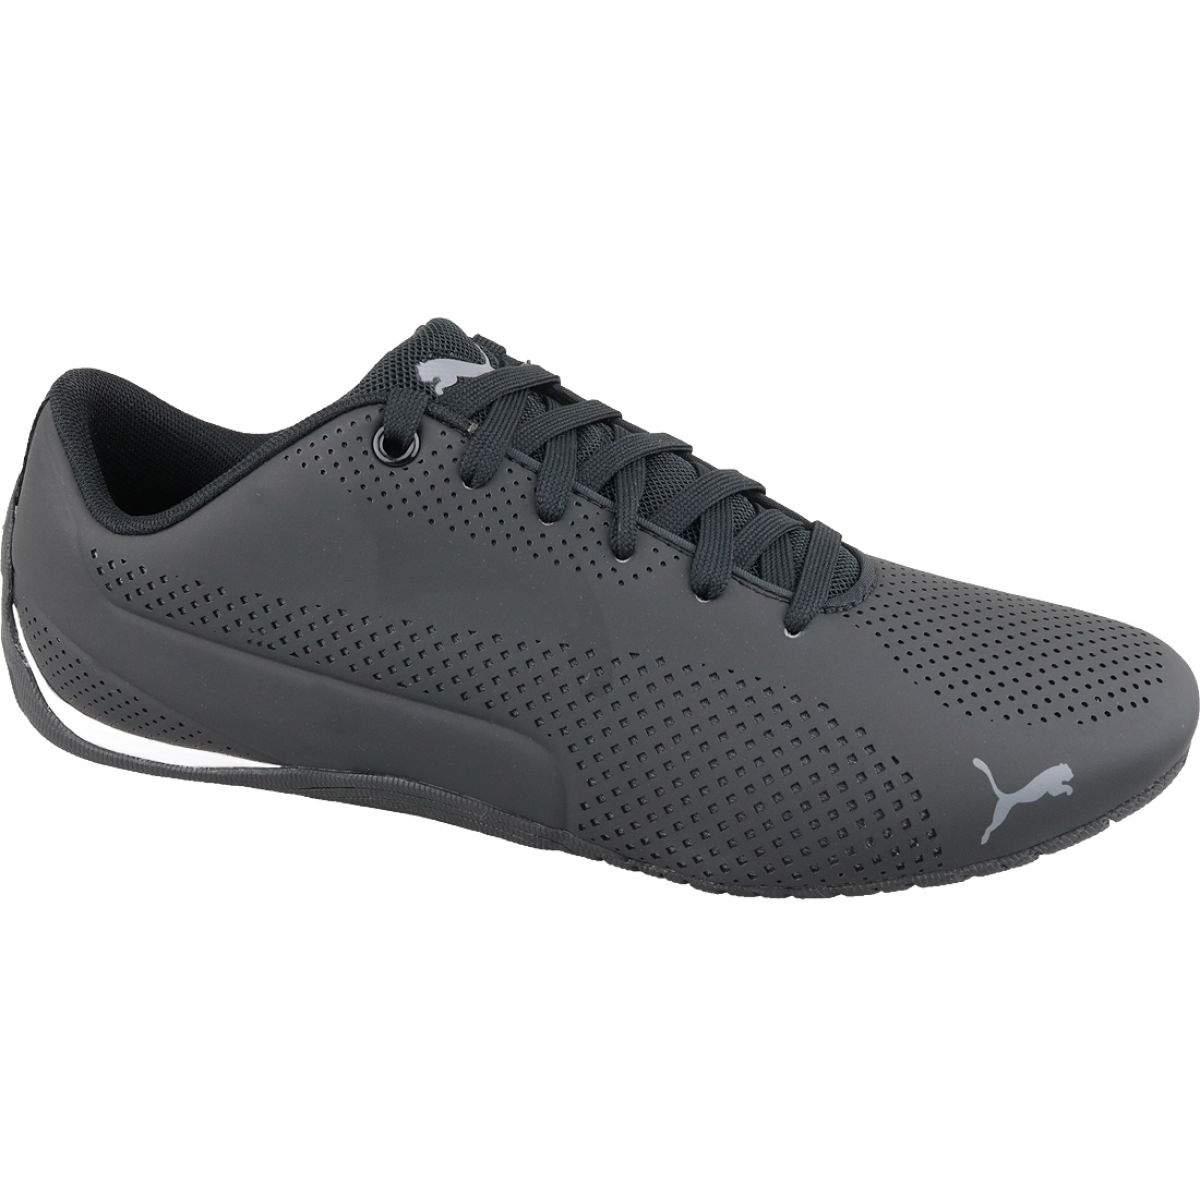 timeless design b71b3 f6276 Schwarz Puma Drift Cat 5 Ultra M 362288-01 Schuhe